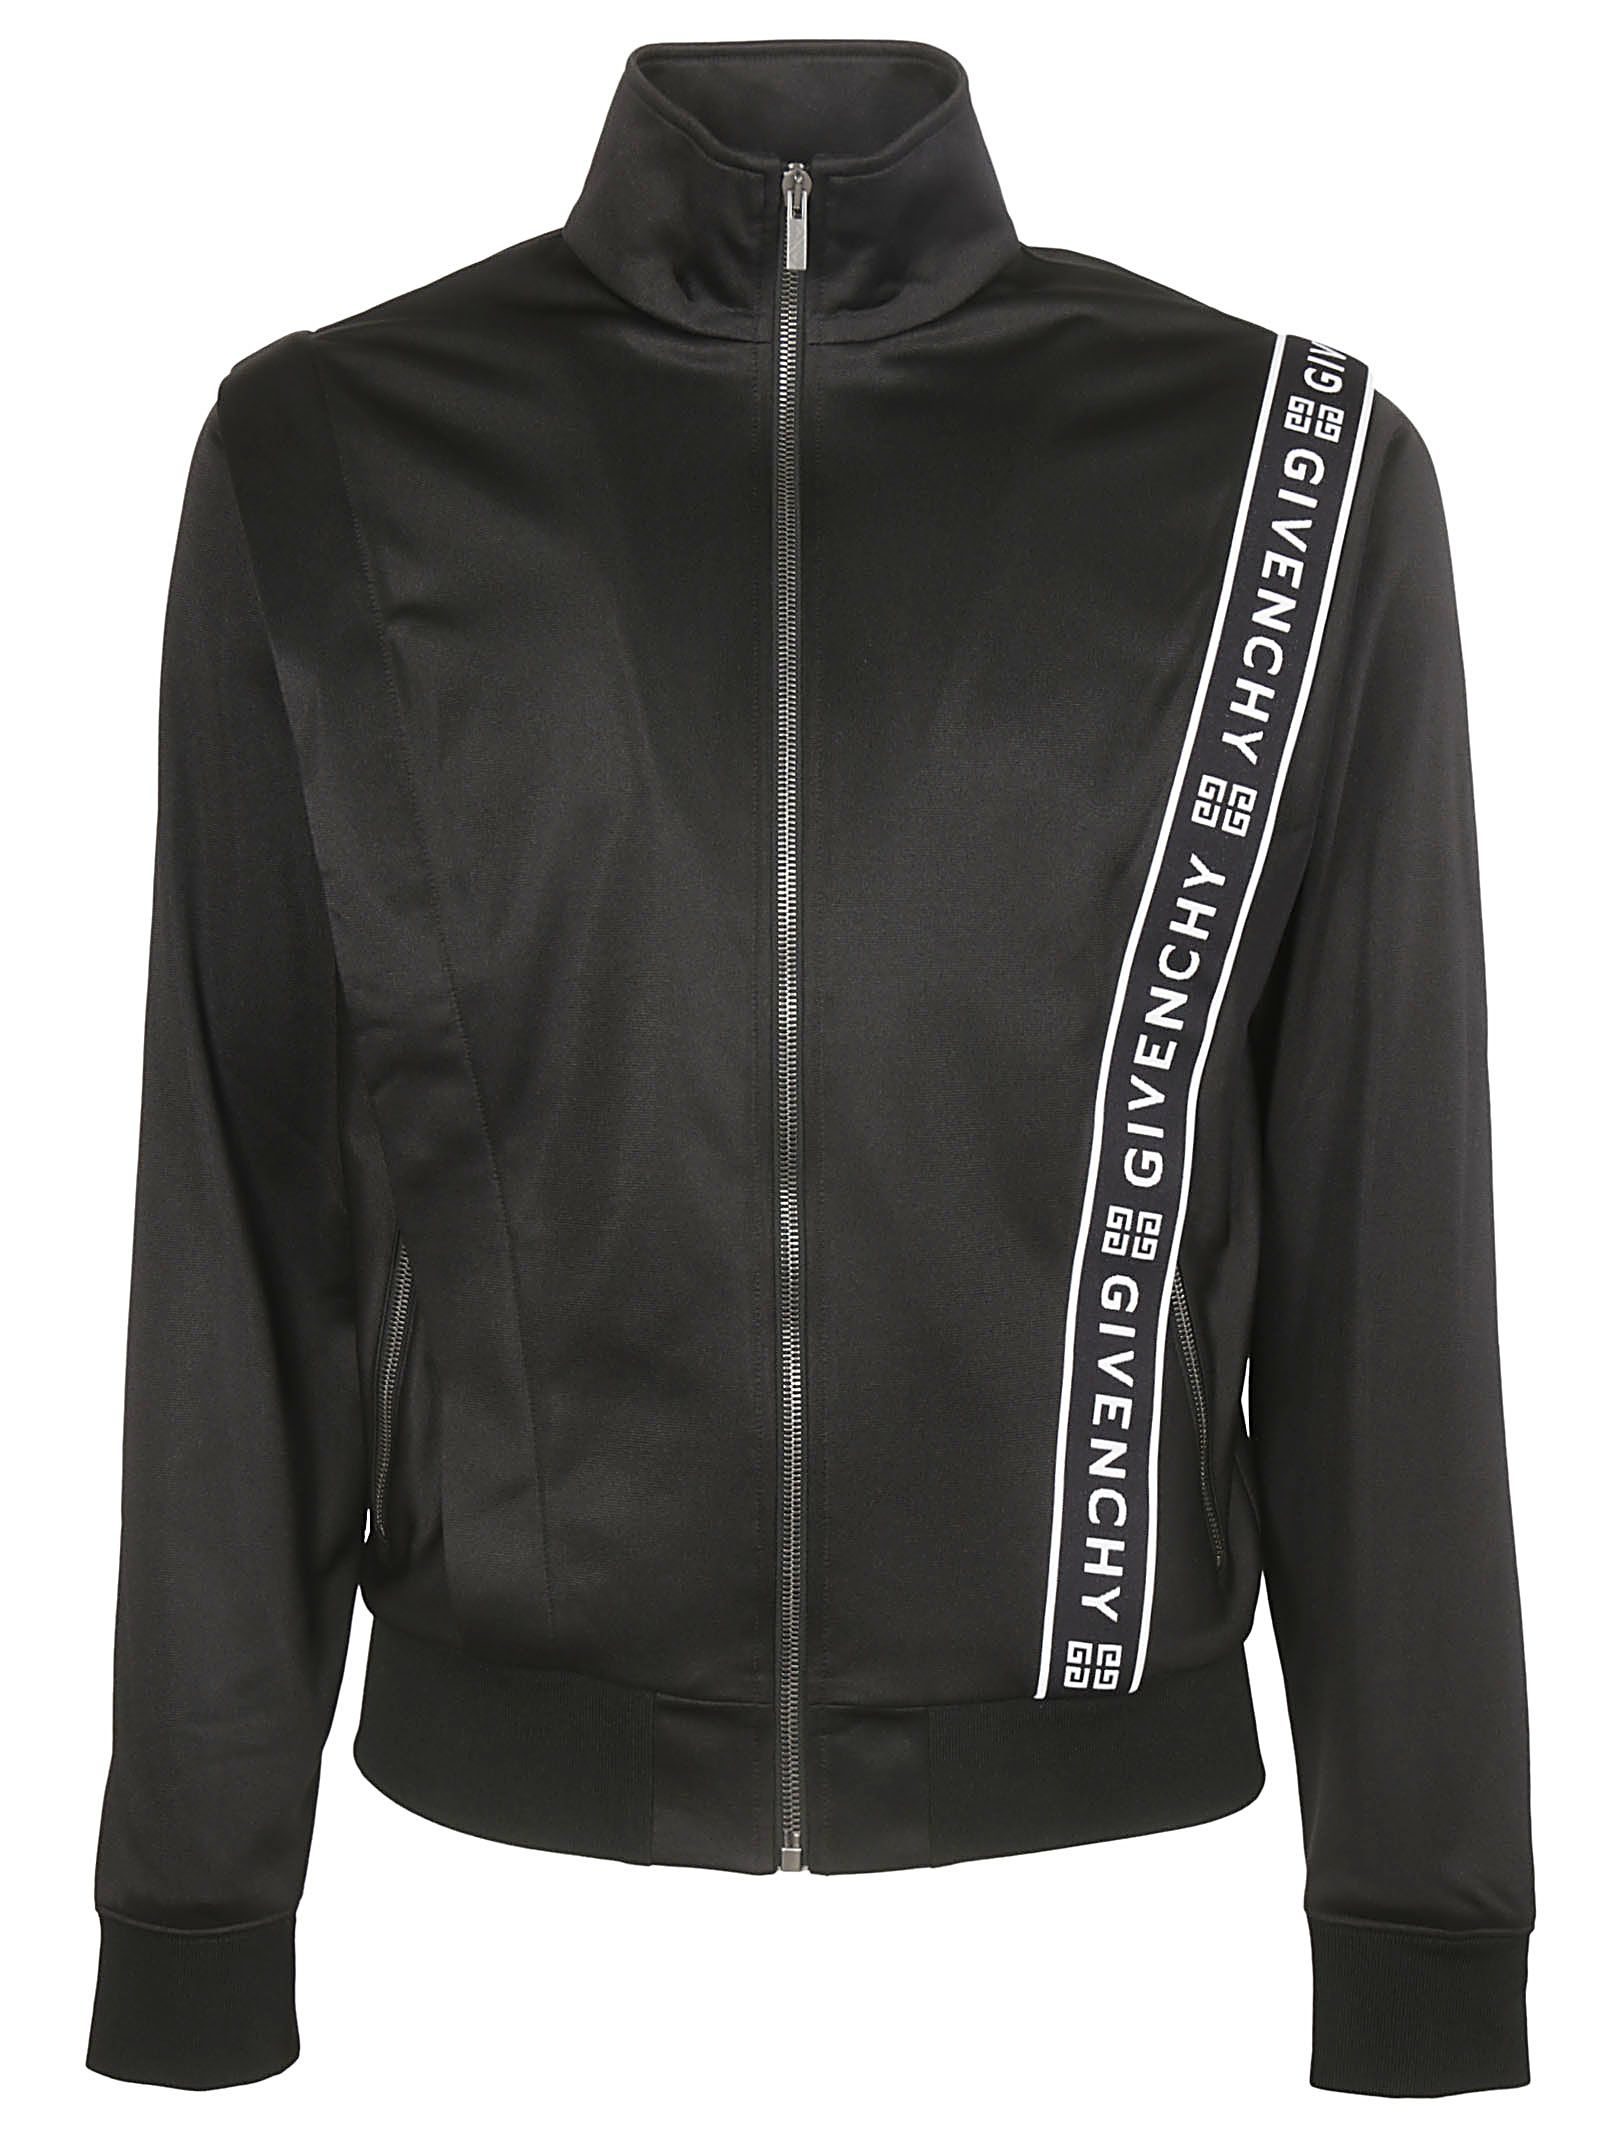 05a48c542 Givenchy Givenchy Logo Band Track Jacket - BLACK - 10860160